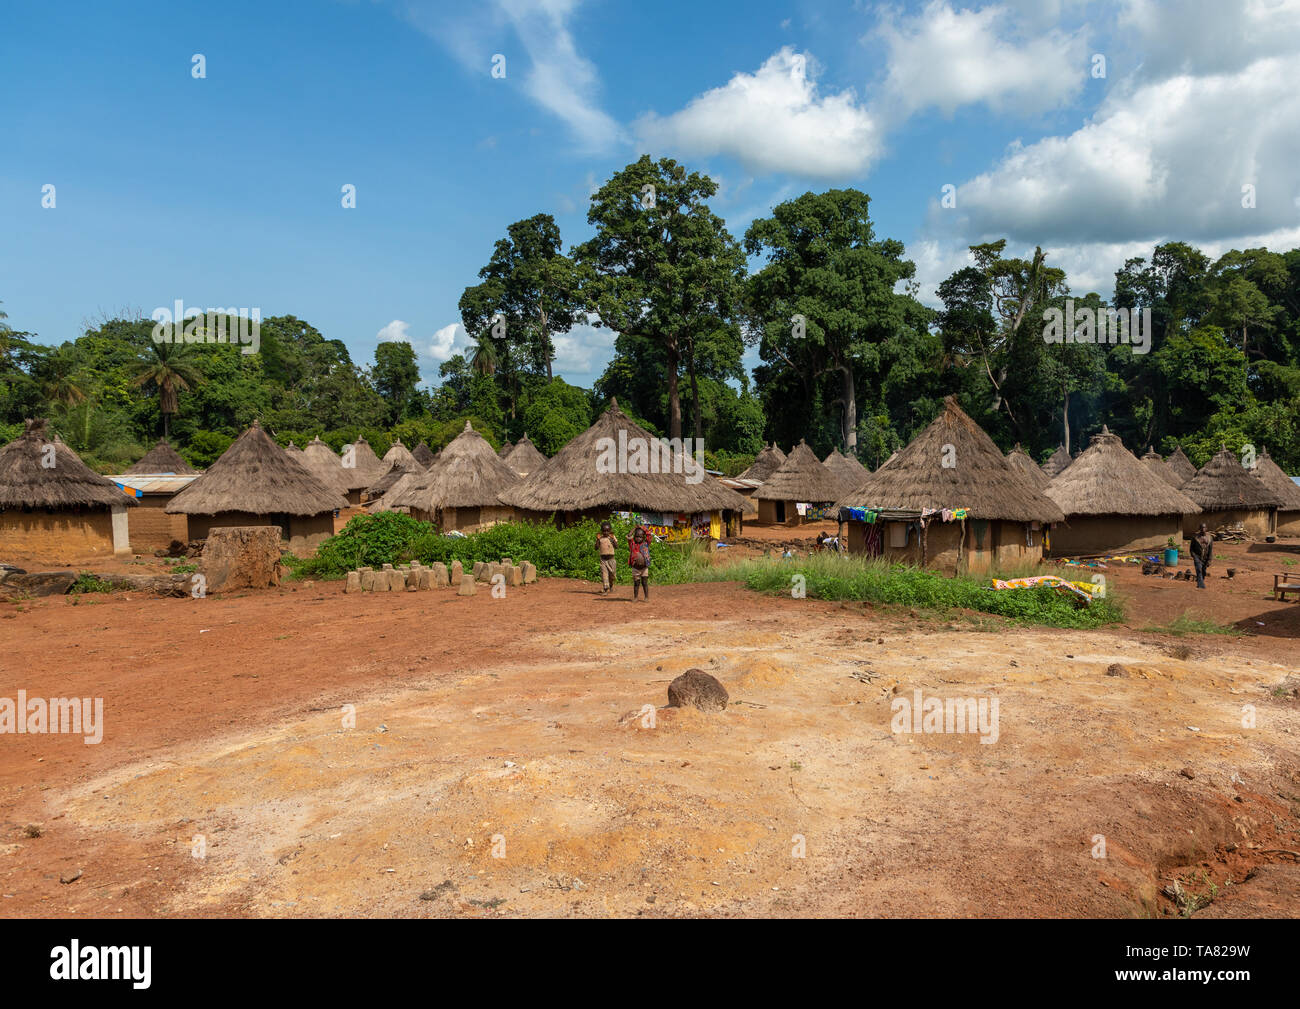 Huts with thatched roofs in a village, Bafing, Gboni, Ivory Coast Stock Photo